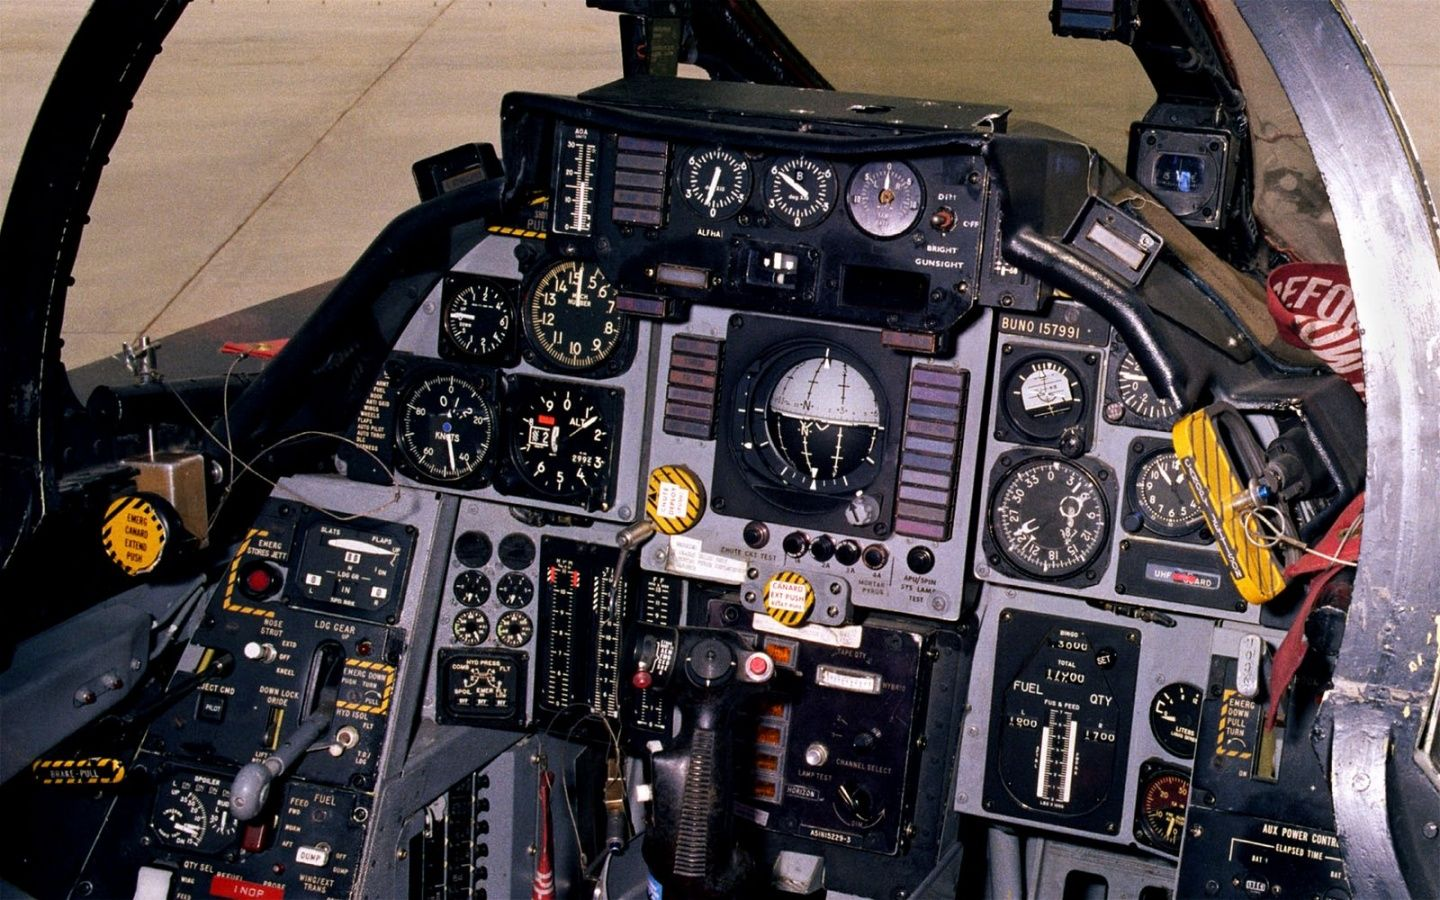 F14 cockpit | Photos | Pinterest | F14 tomcat